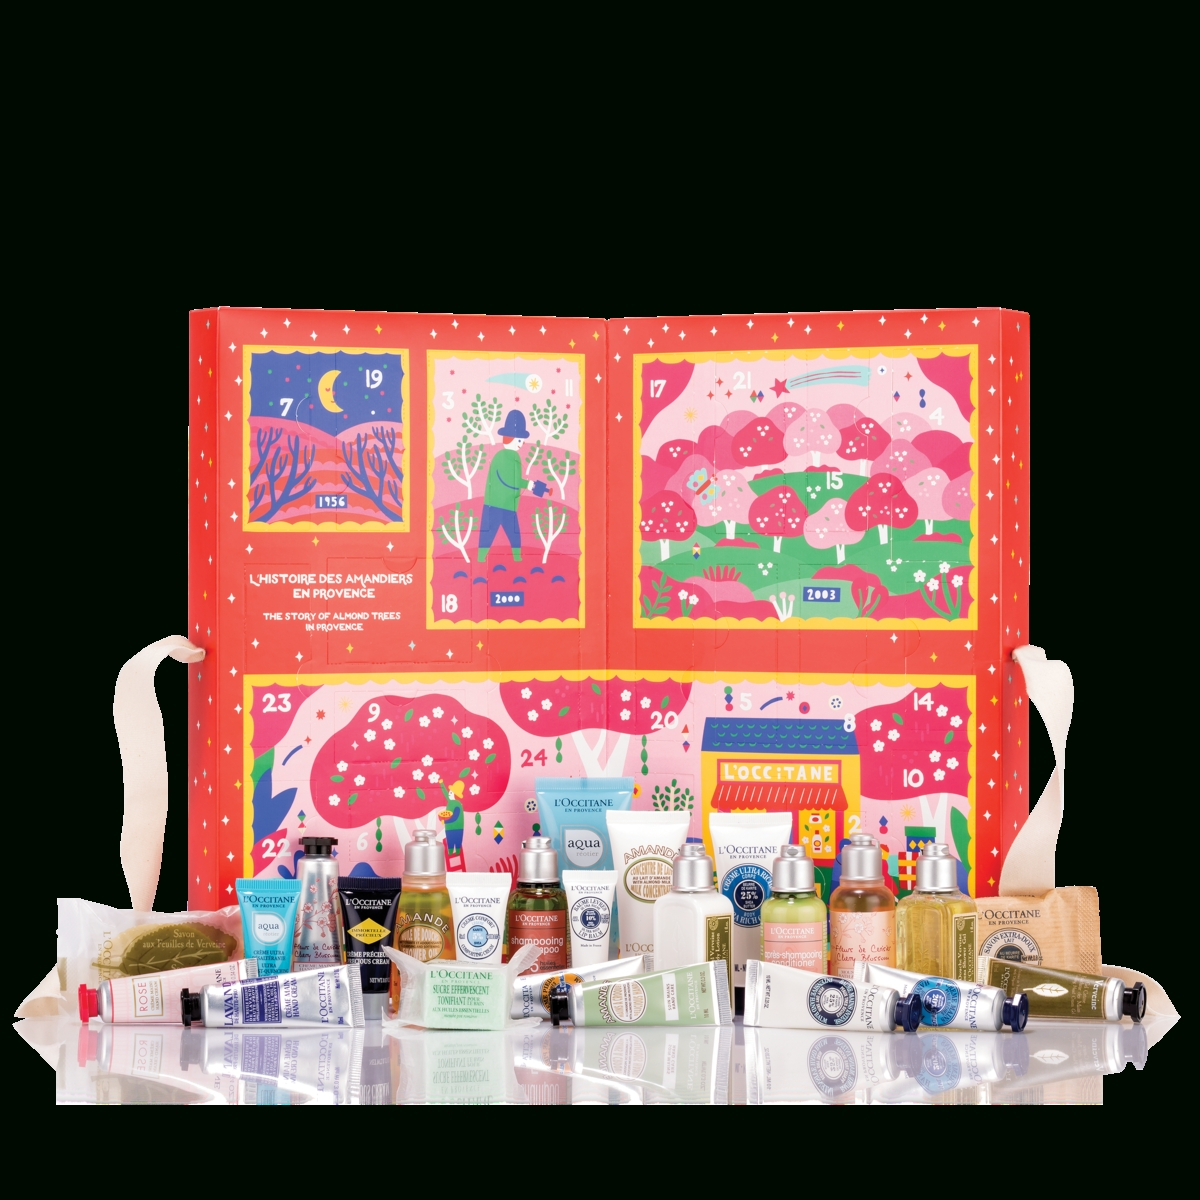 L Occitane Advent Calendar 2021 Avnitasoni